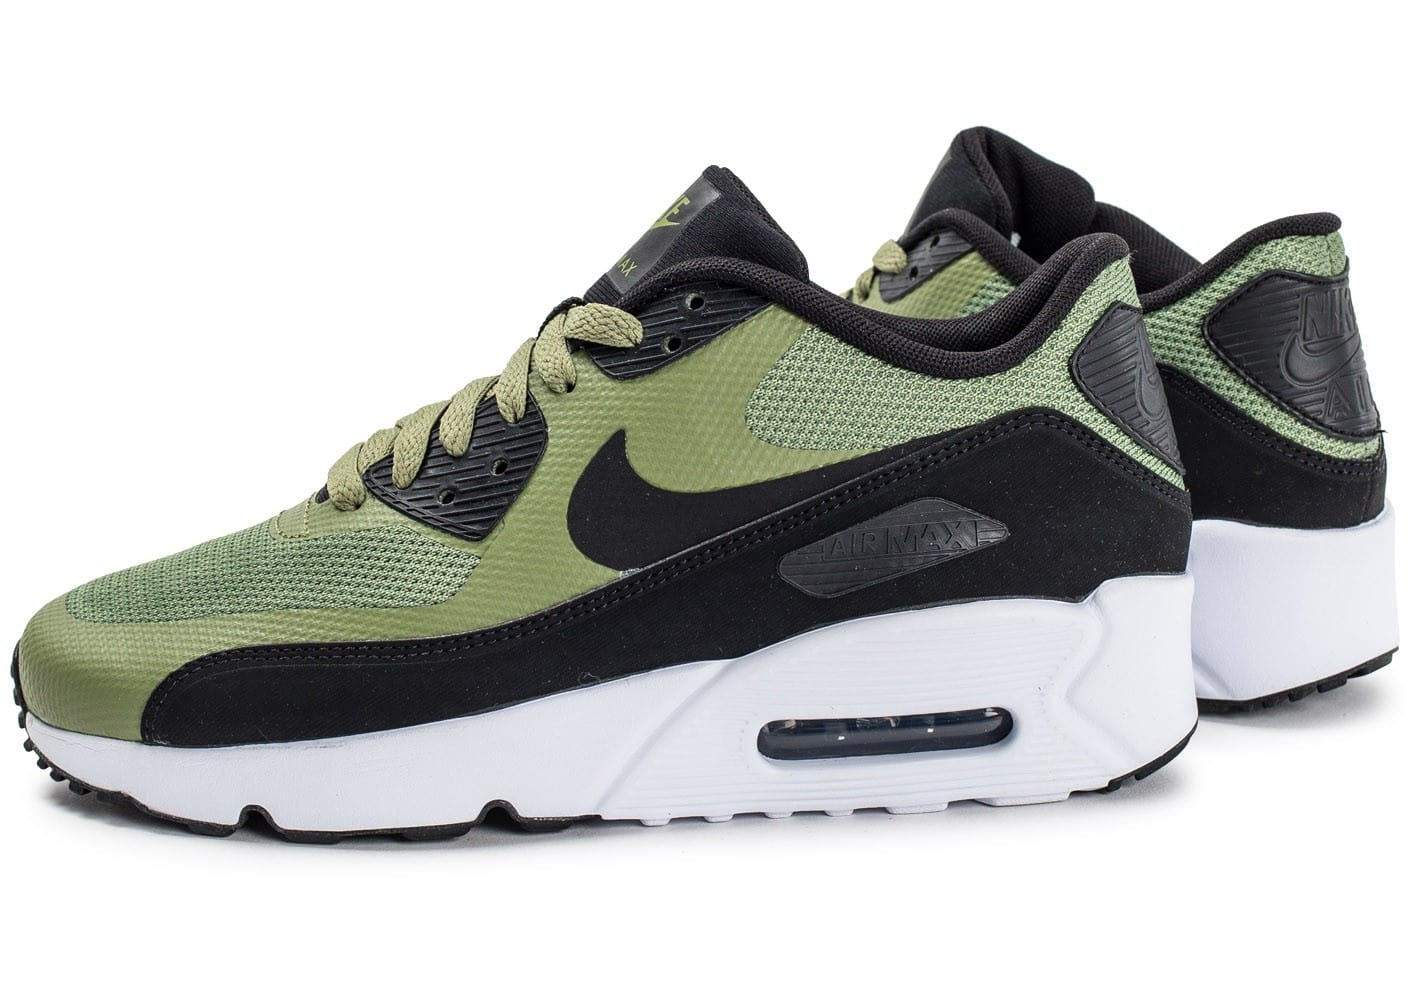 nike air max 90 ultra 2 0 junior kaki chaussures toutes les baskets sold es chausport. Black Bedroom Furniture Sets. Home Design Ideas